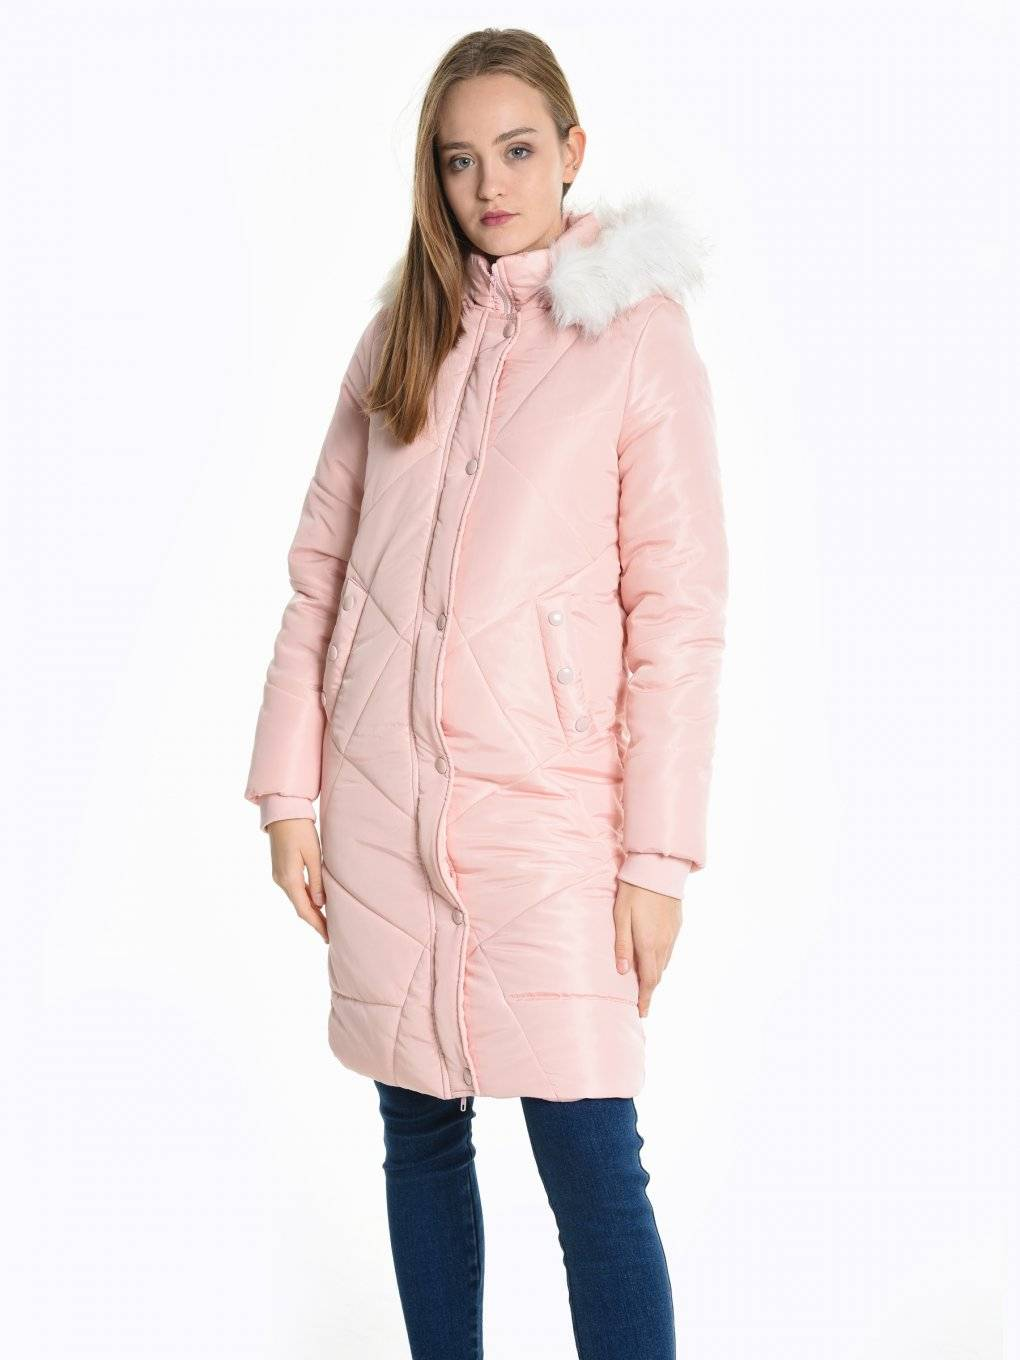 Longloine qulited padded jacket with removable faux fur